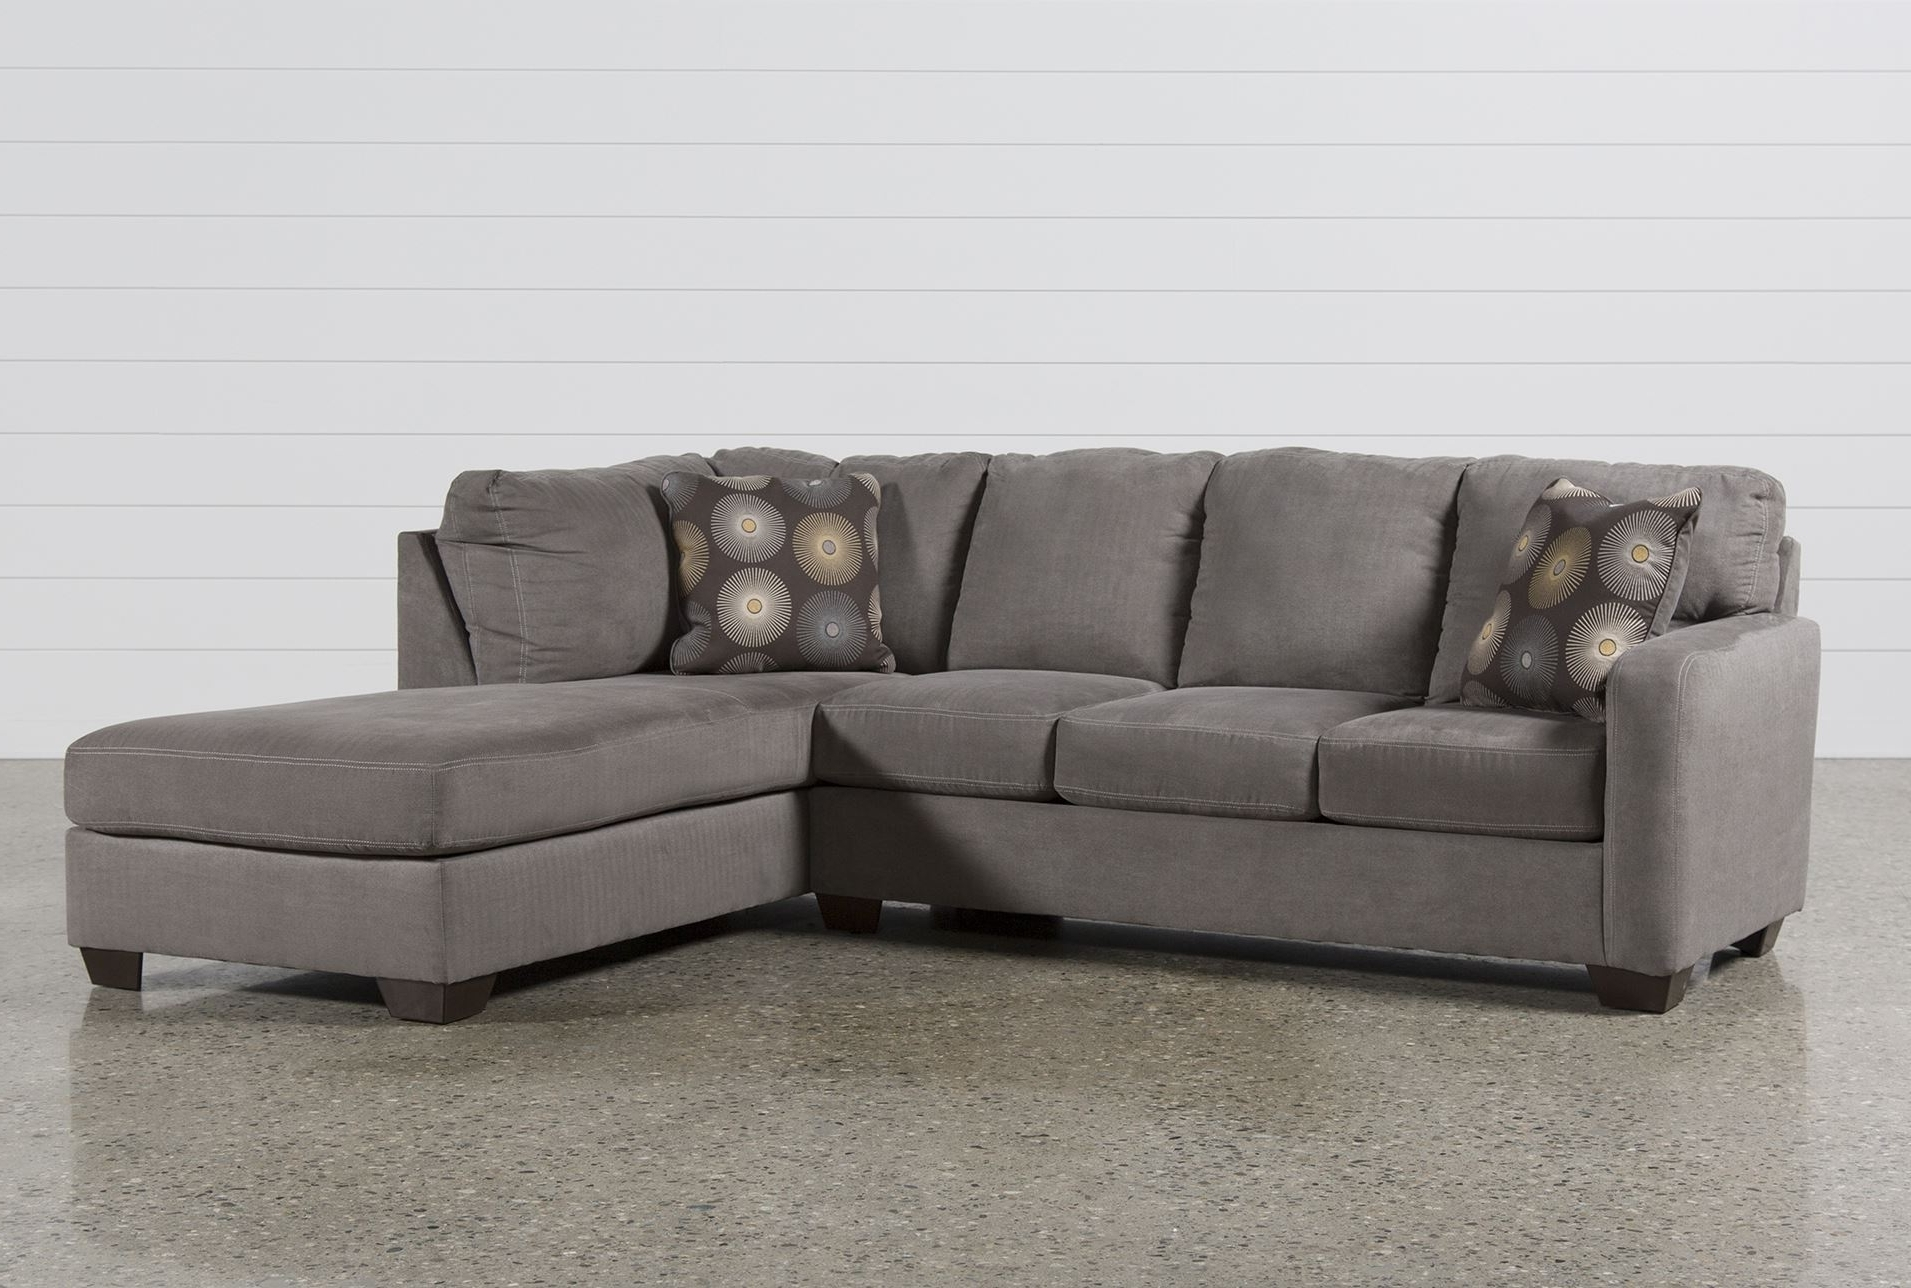 Latest Living Spaces Sectional Sofas In Best 2 Piece Sectional Sofa 23 For Your Living Room Sofa Ideas (View 10 of 20)